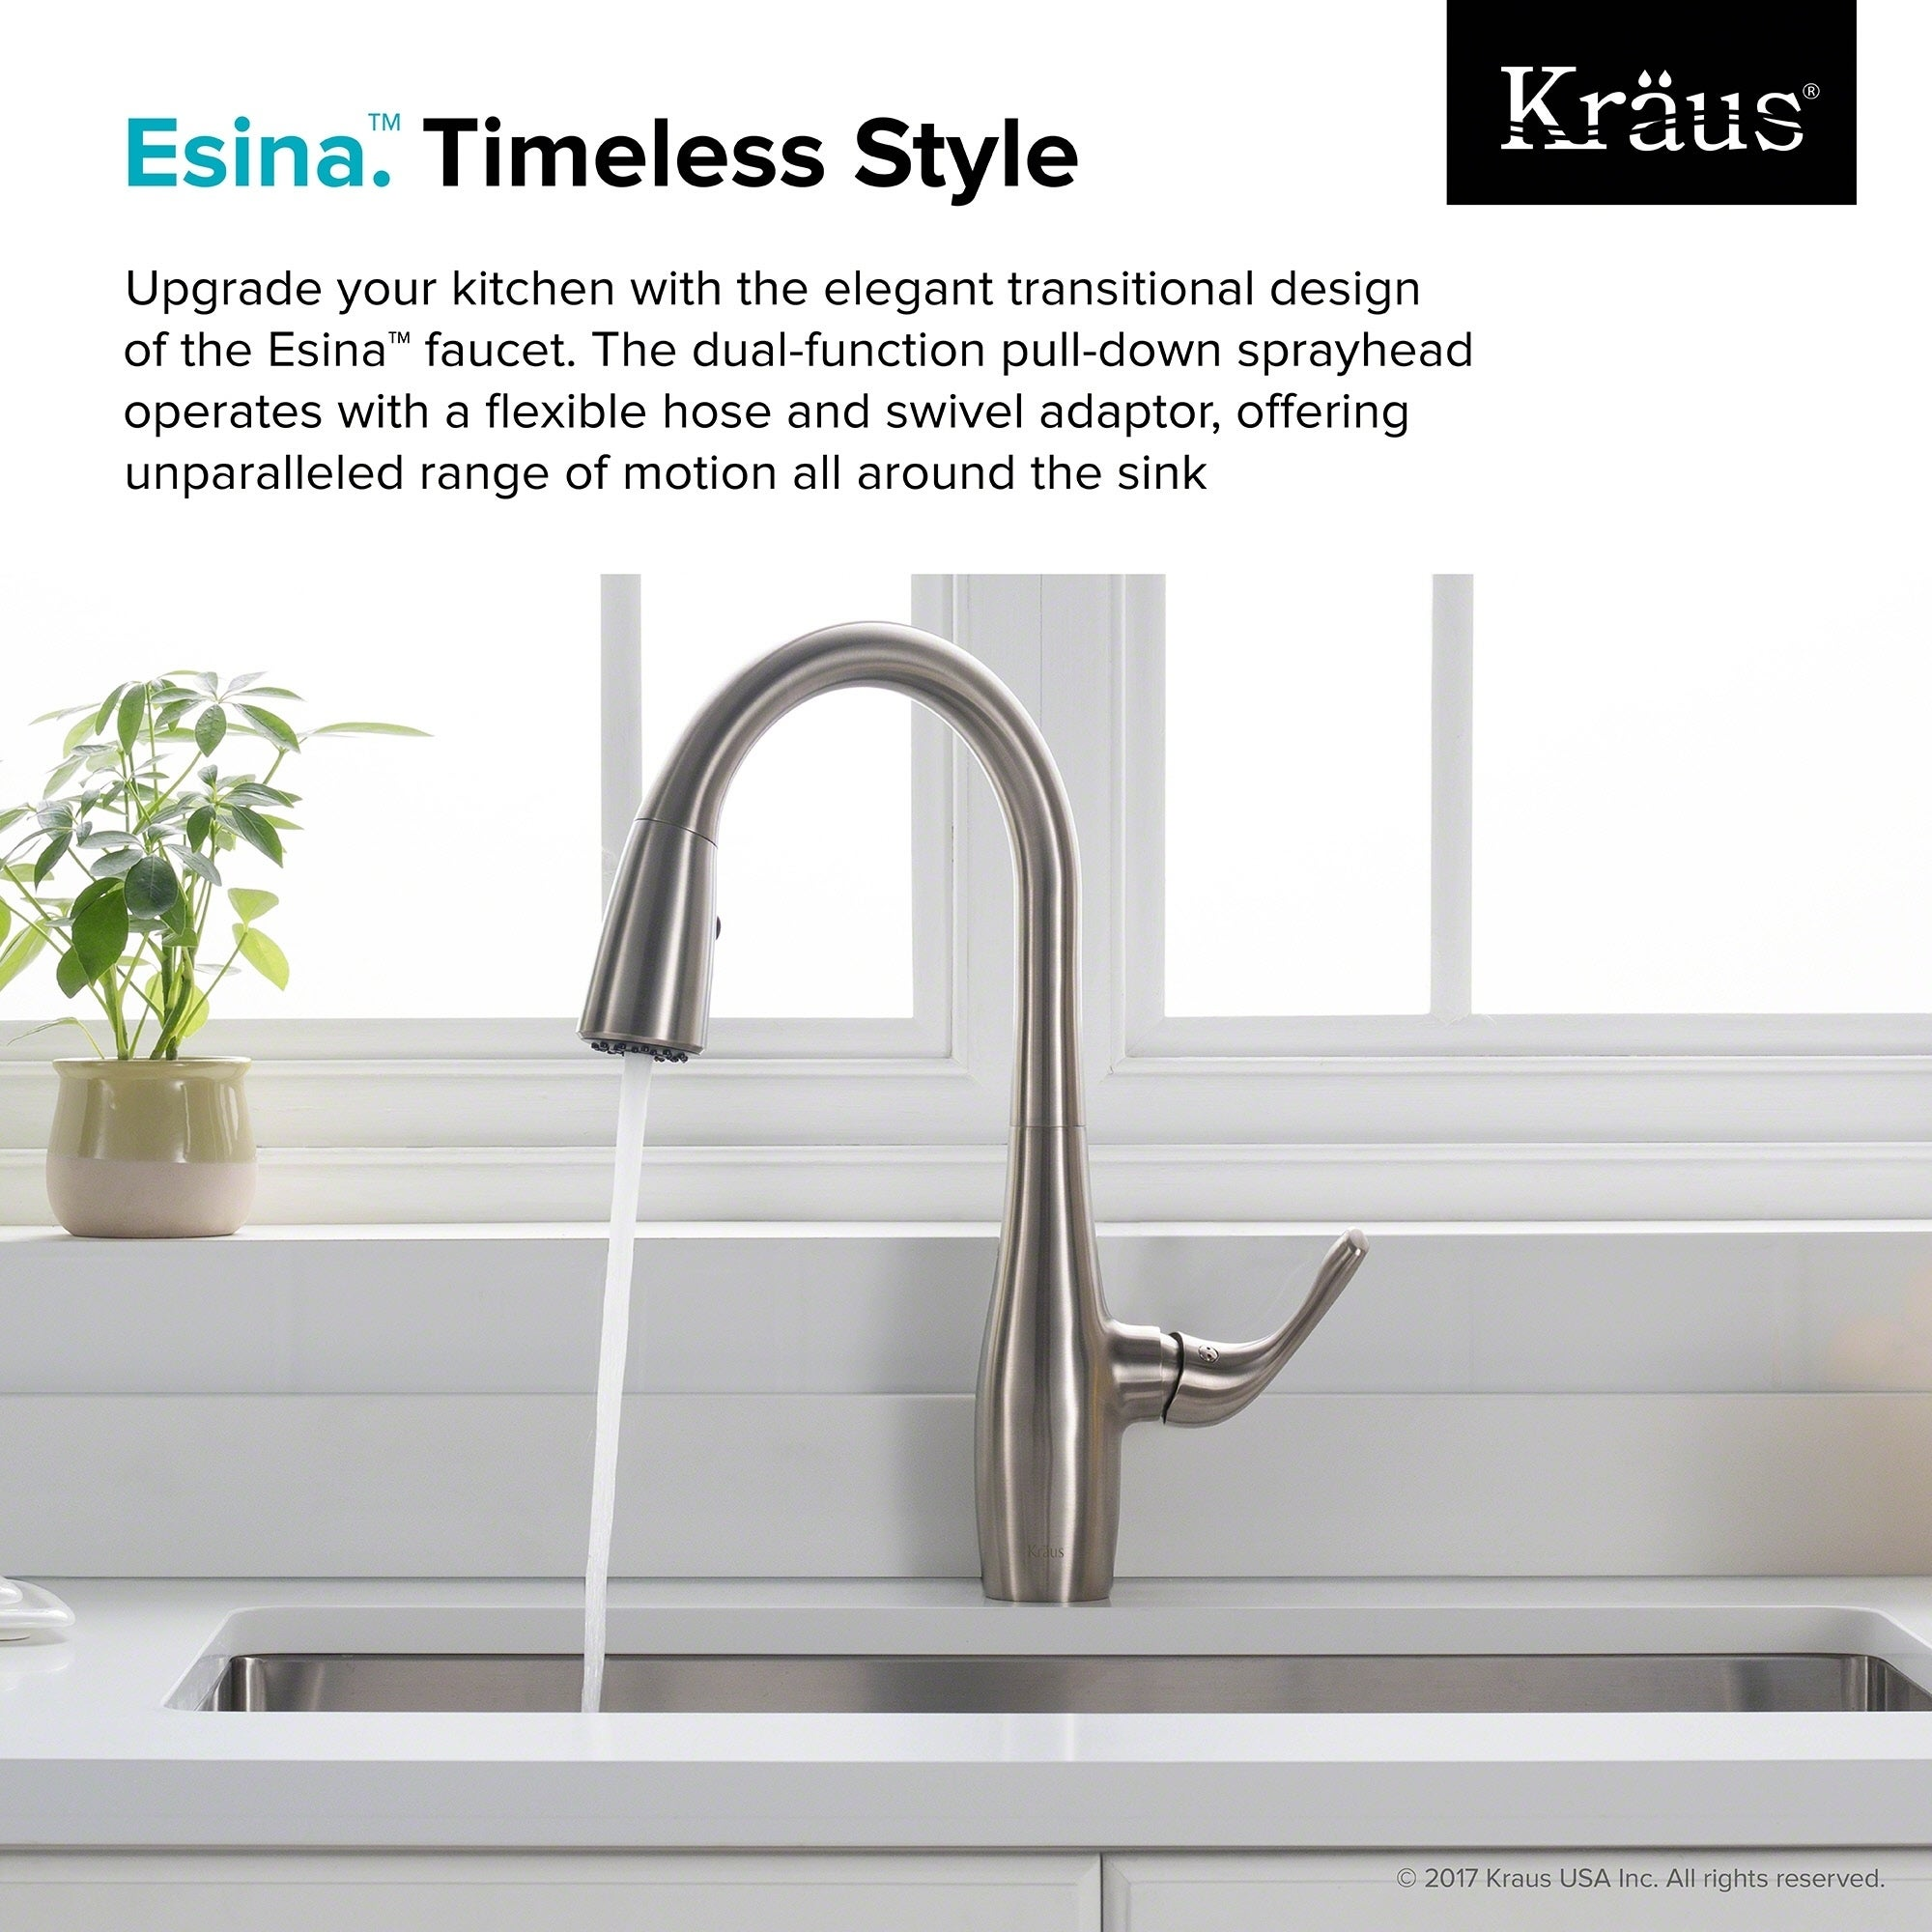 kraus inch with commercial com kpf function handle pull dual bolden kitchen kraususa faucet kf down single sprayhead